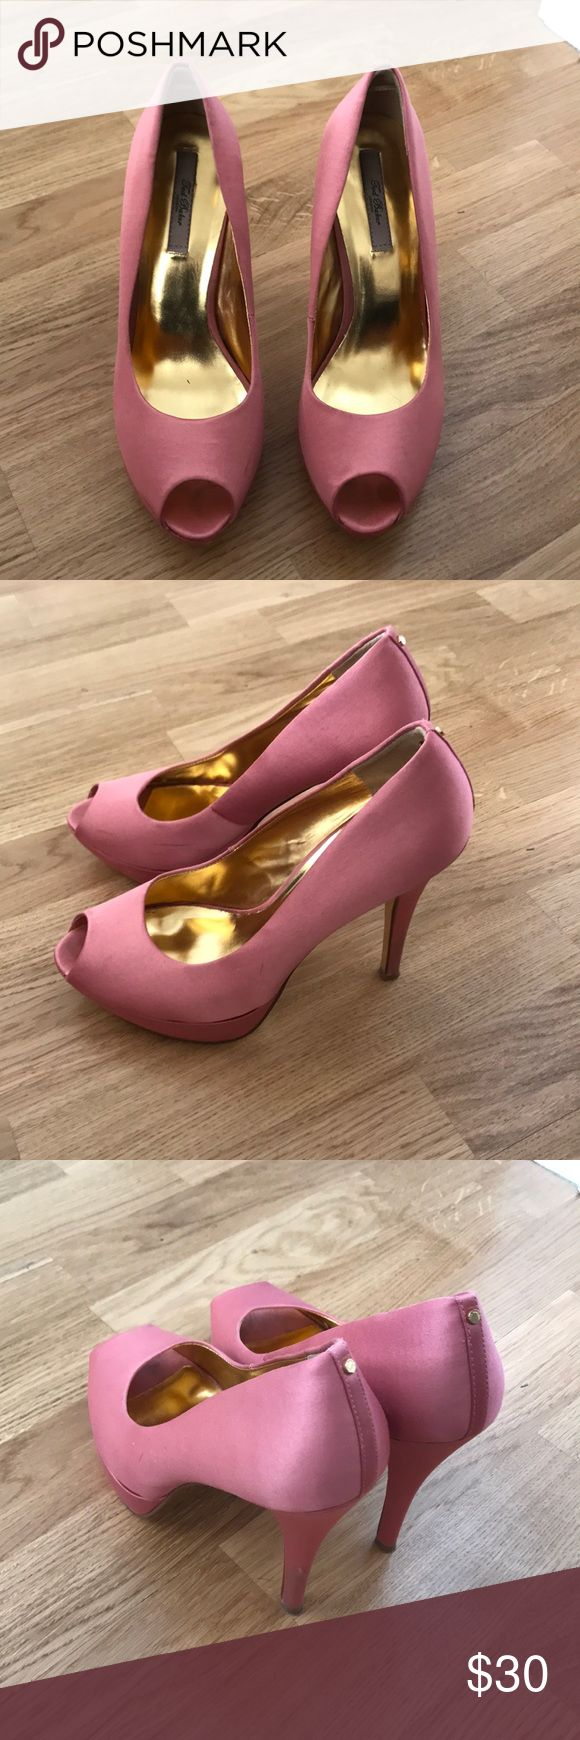 Ted Baker like newcute pink shoes size US 8, EU 39 Ted Baker like new super cute pink shoes size US 8, EU 39 Ted Baker Shoes Heels